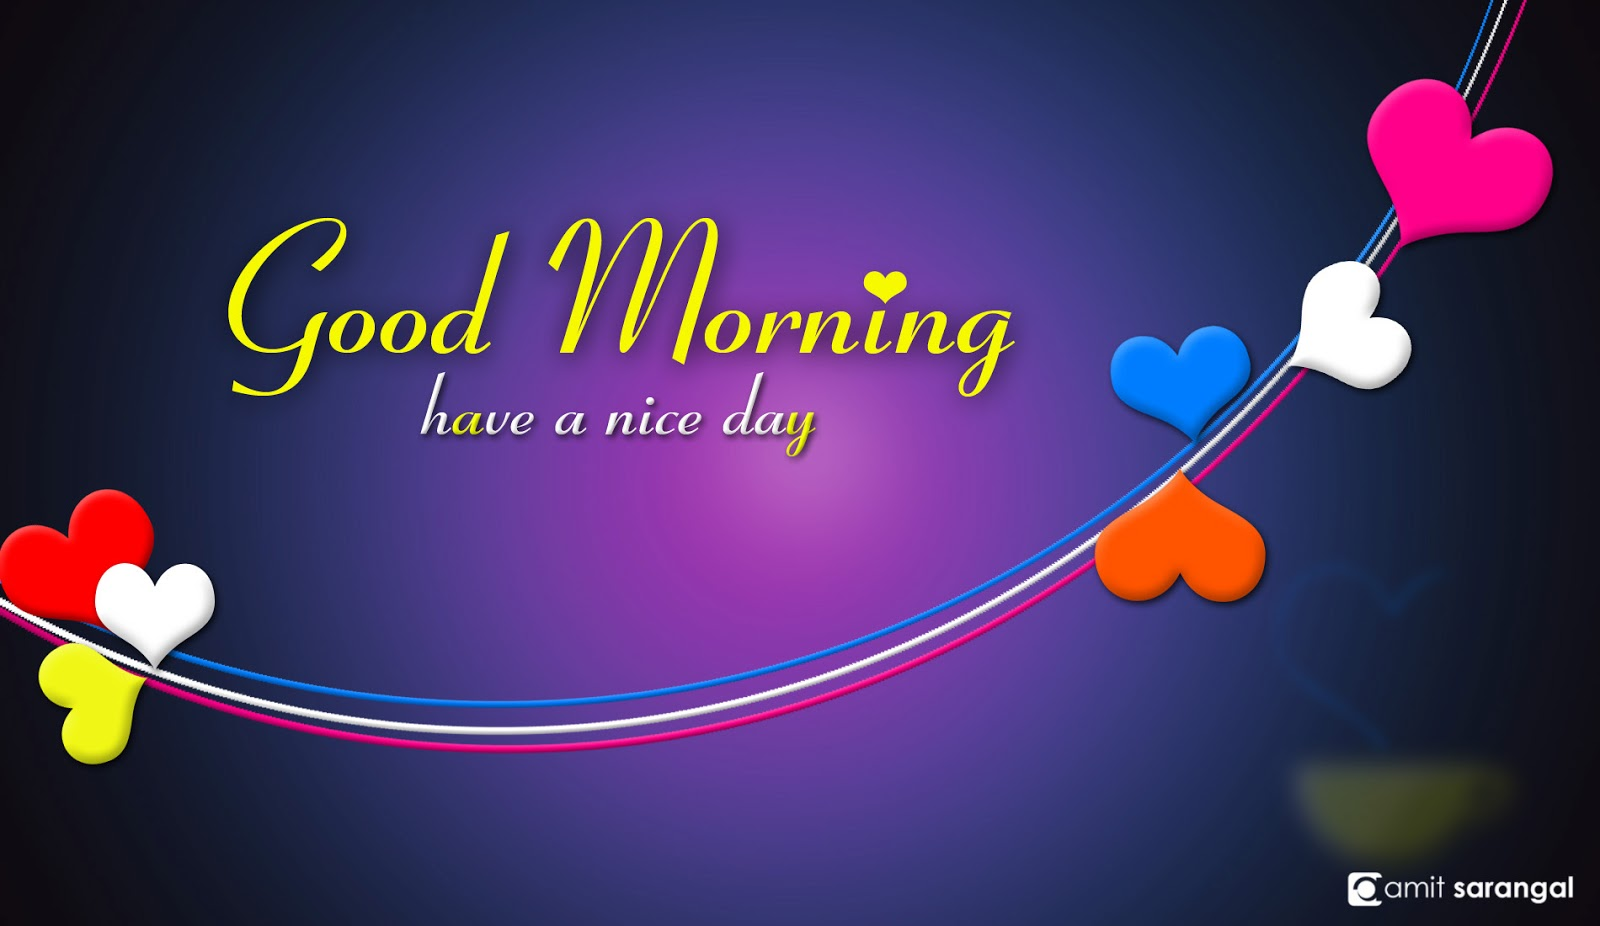 Good Morning 1 Amit Sarangal